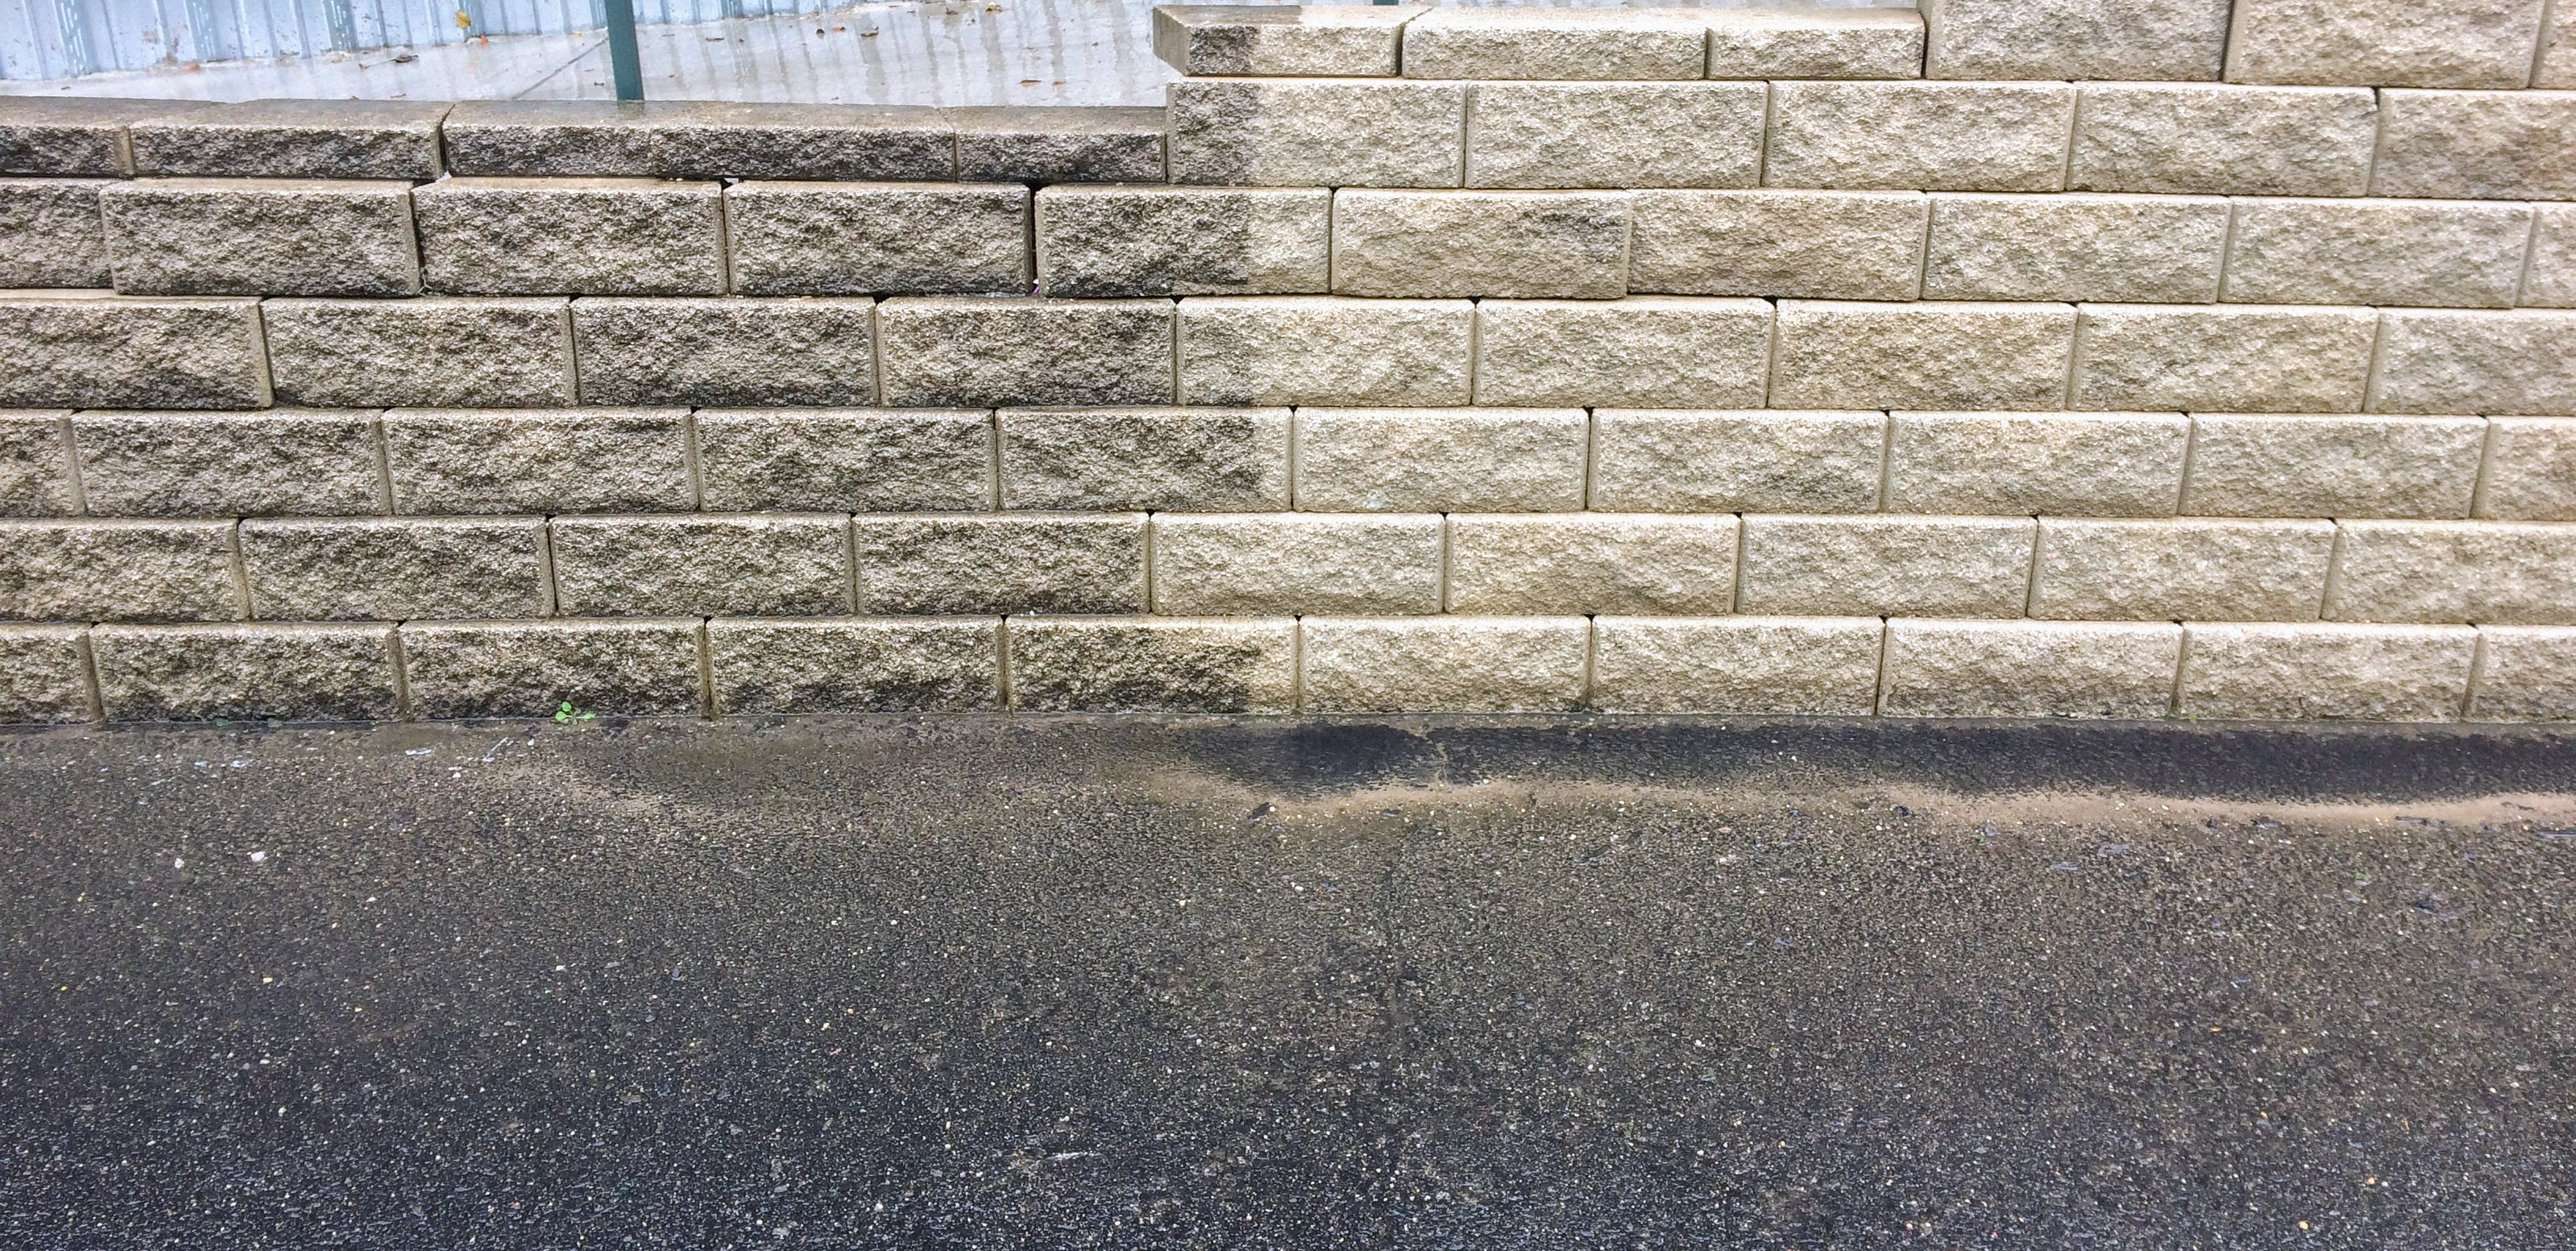 Retaining wall that has been power washed revealing the extent of dirt and grime.